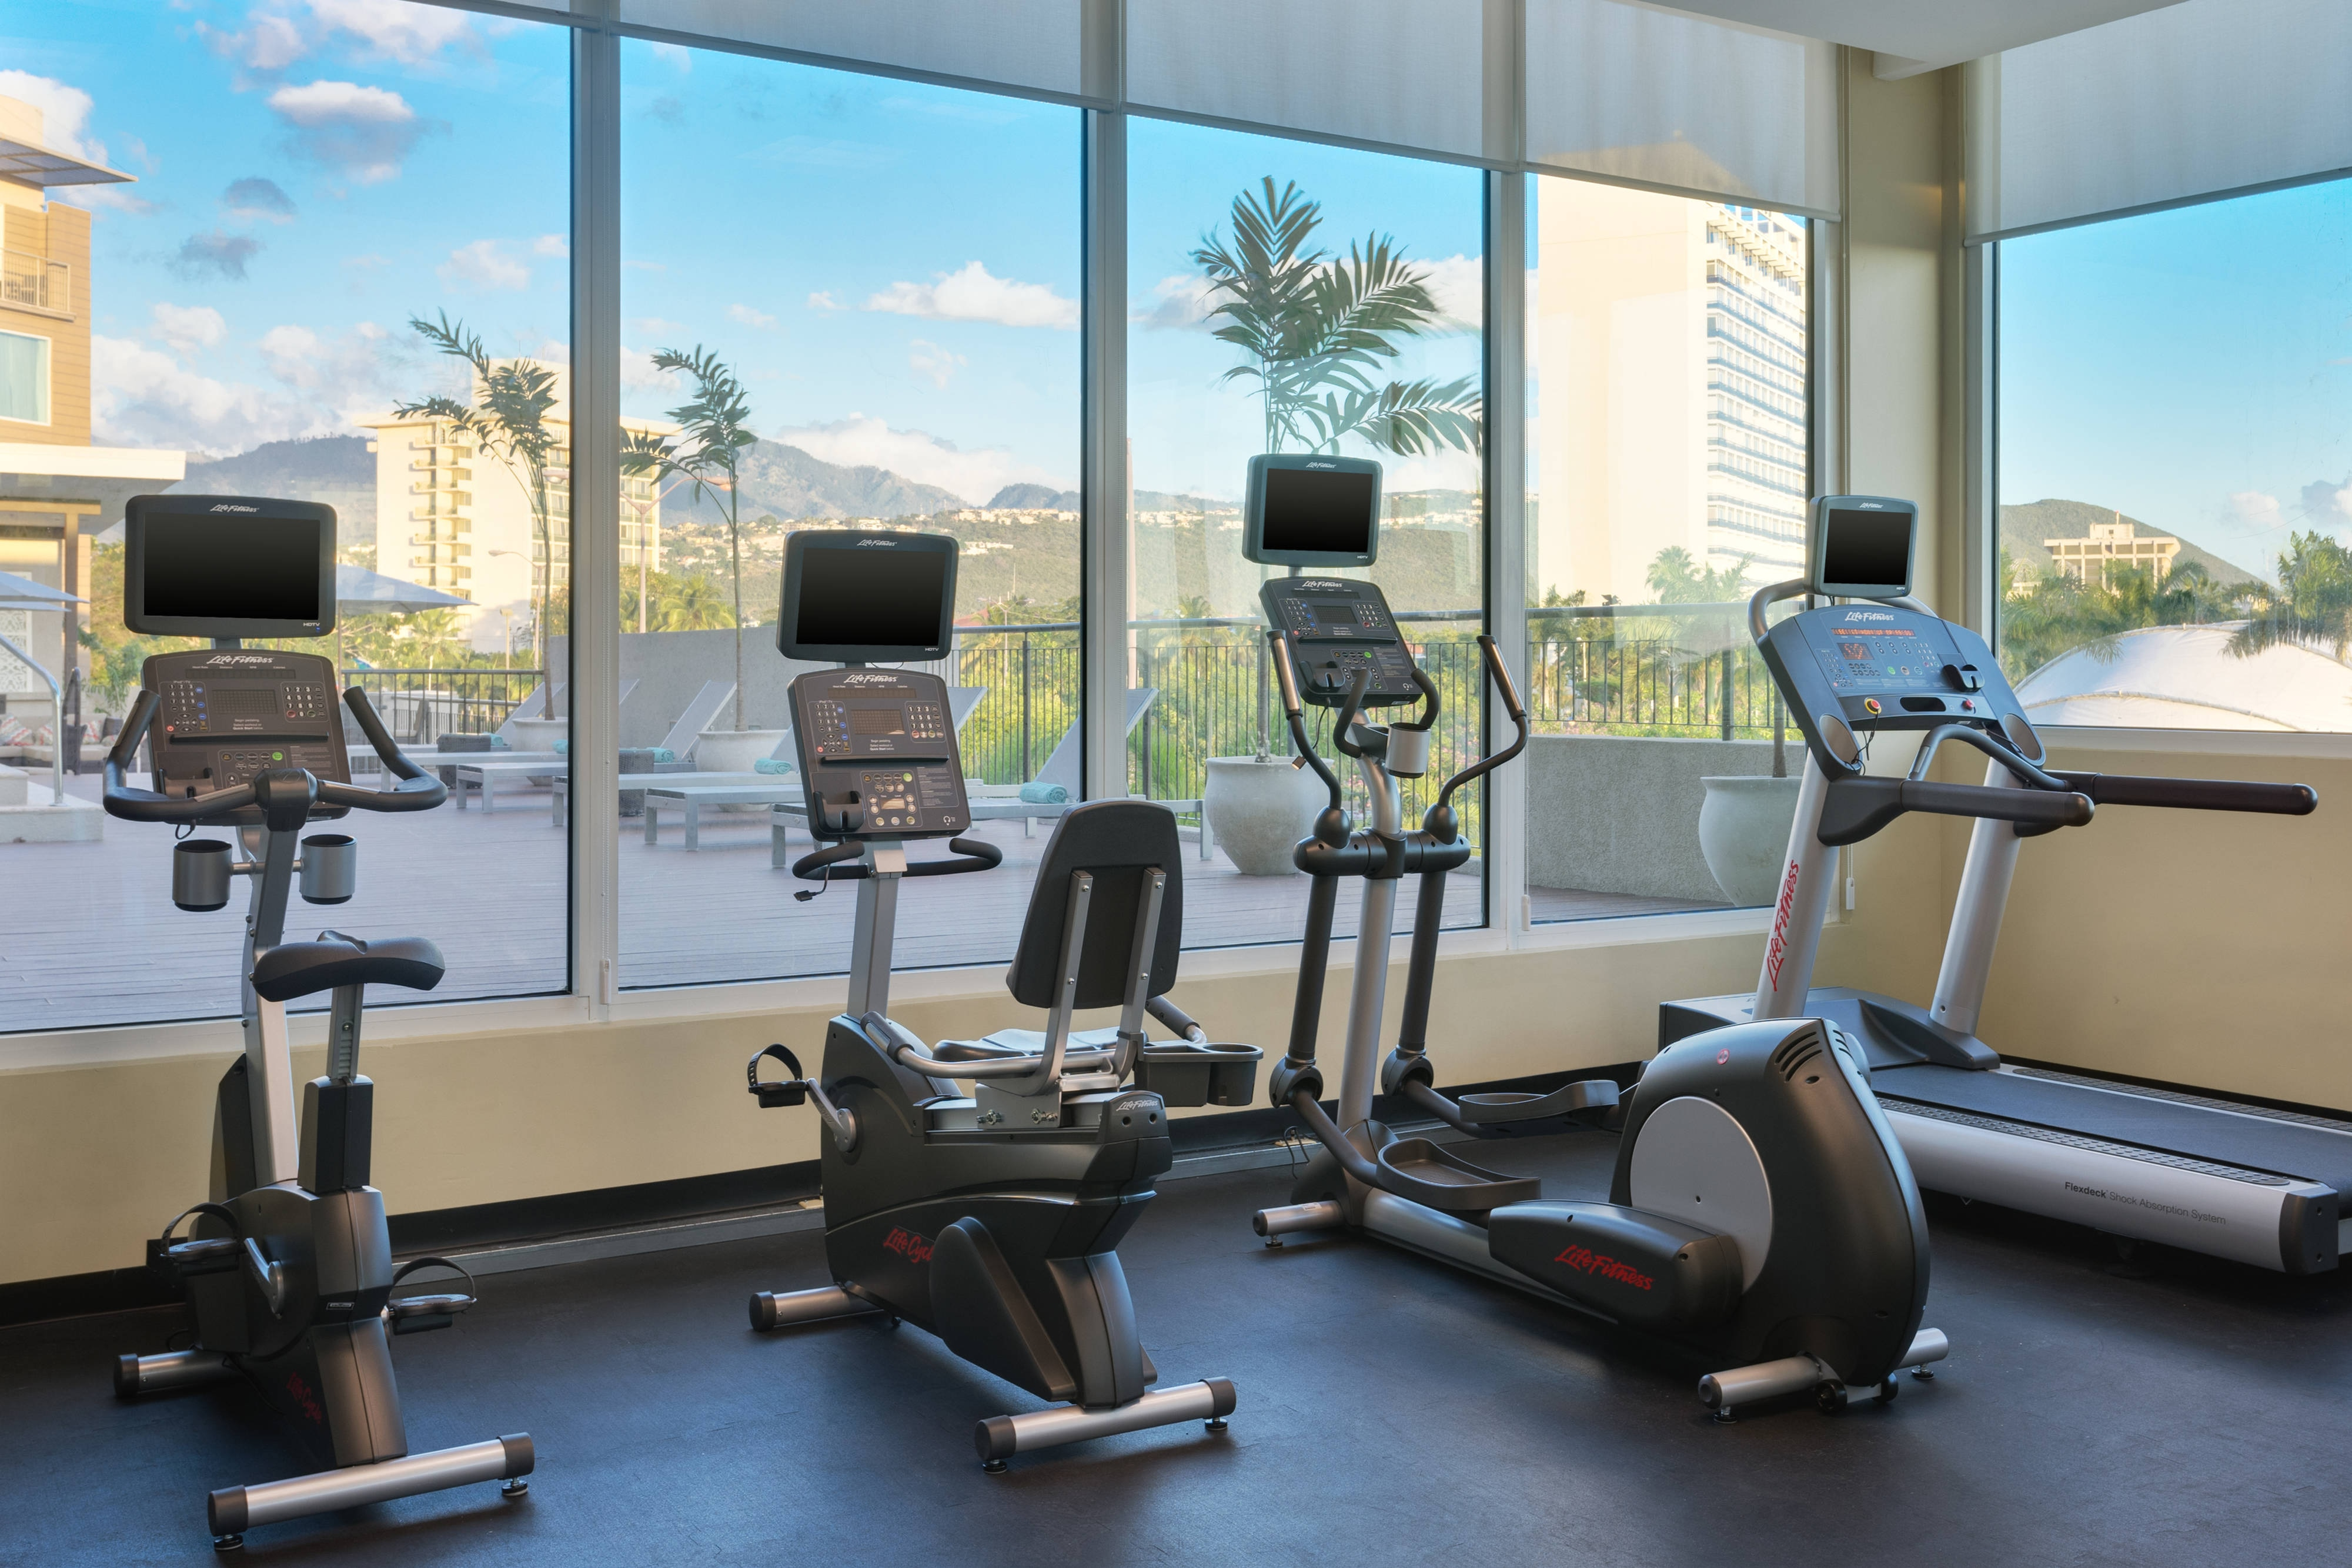 Fitness Center Cardio Equipment Kingston